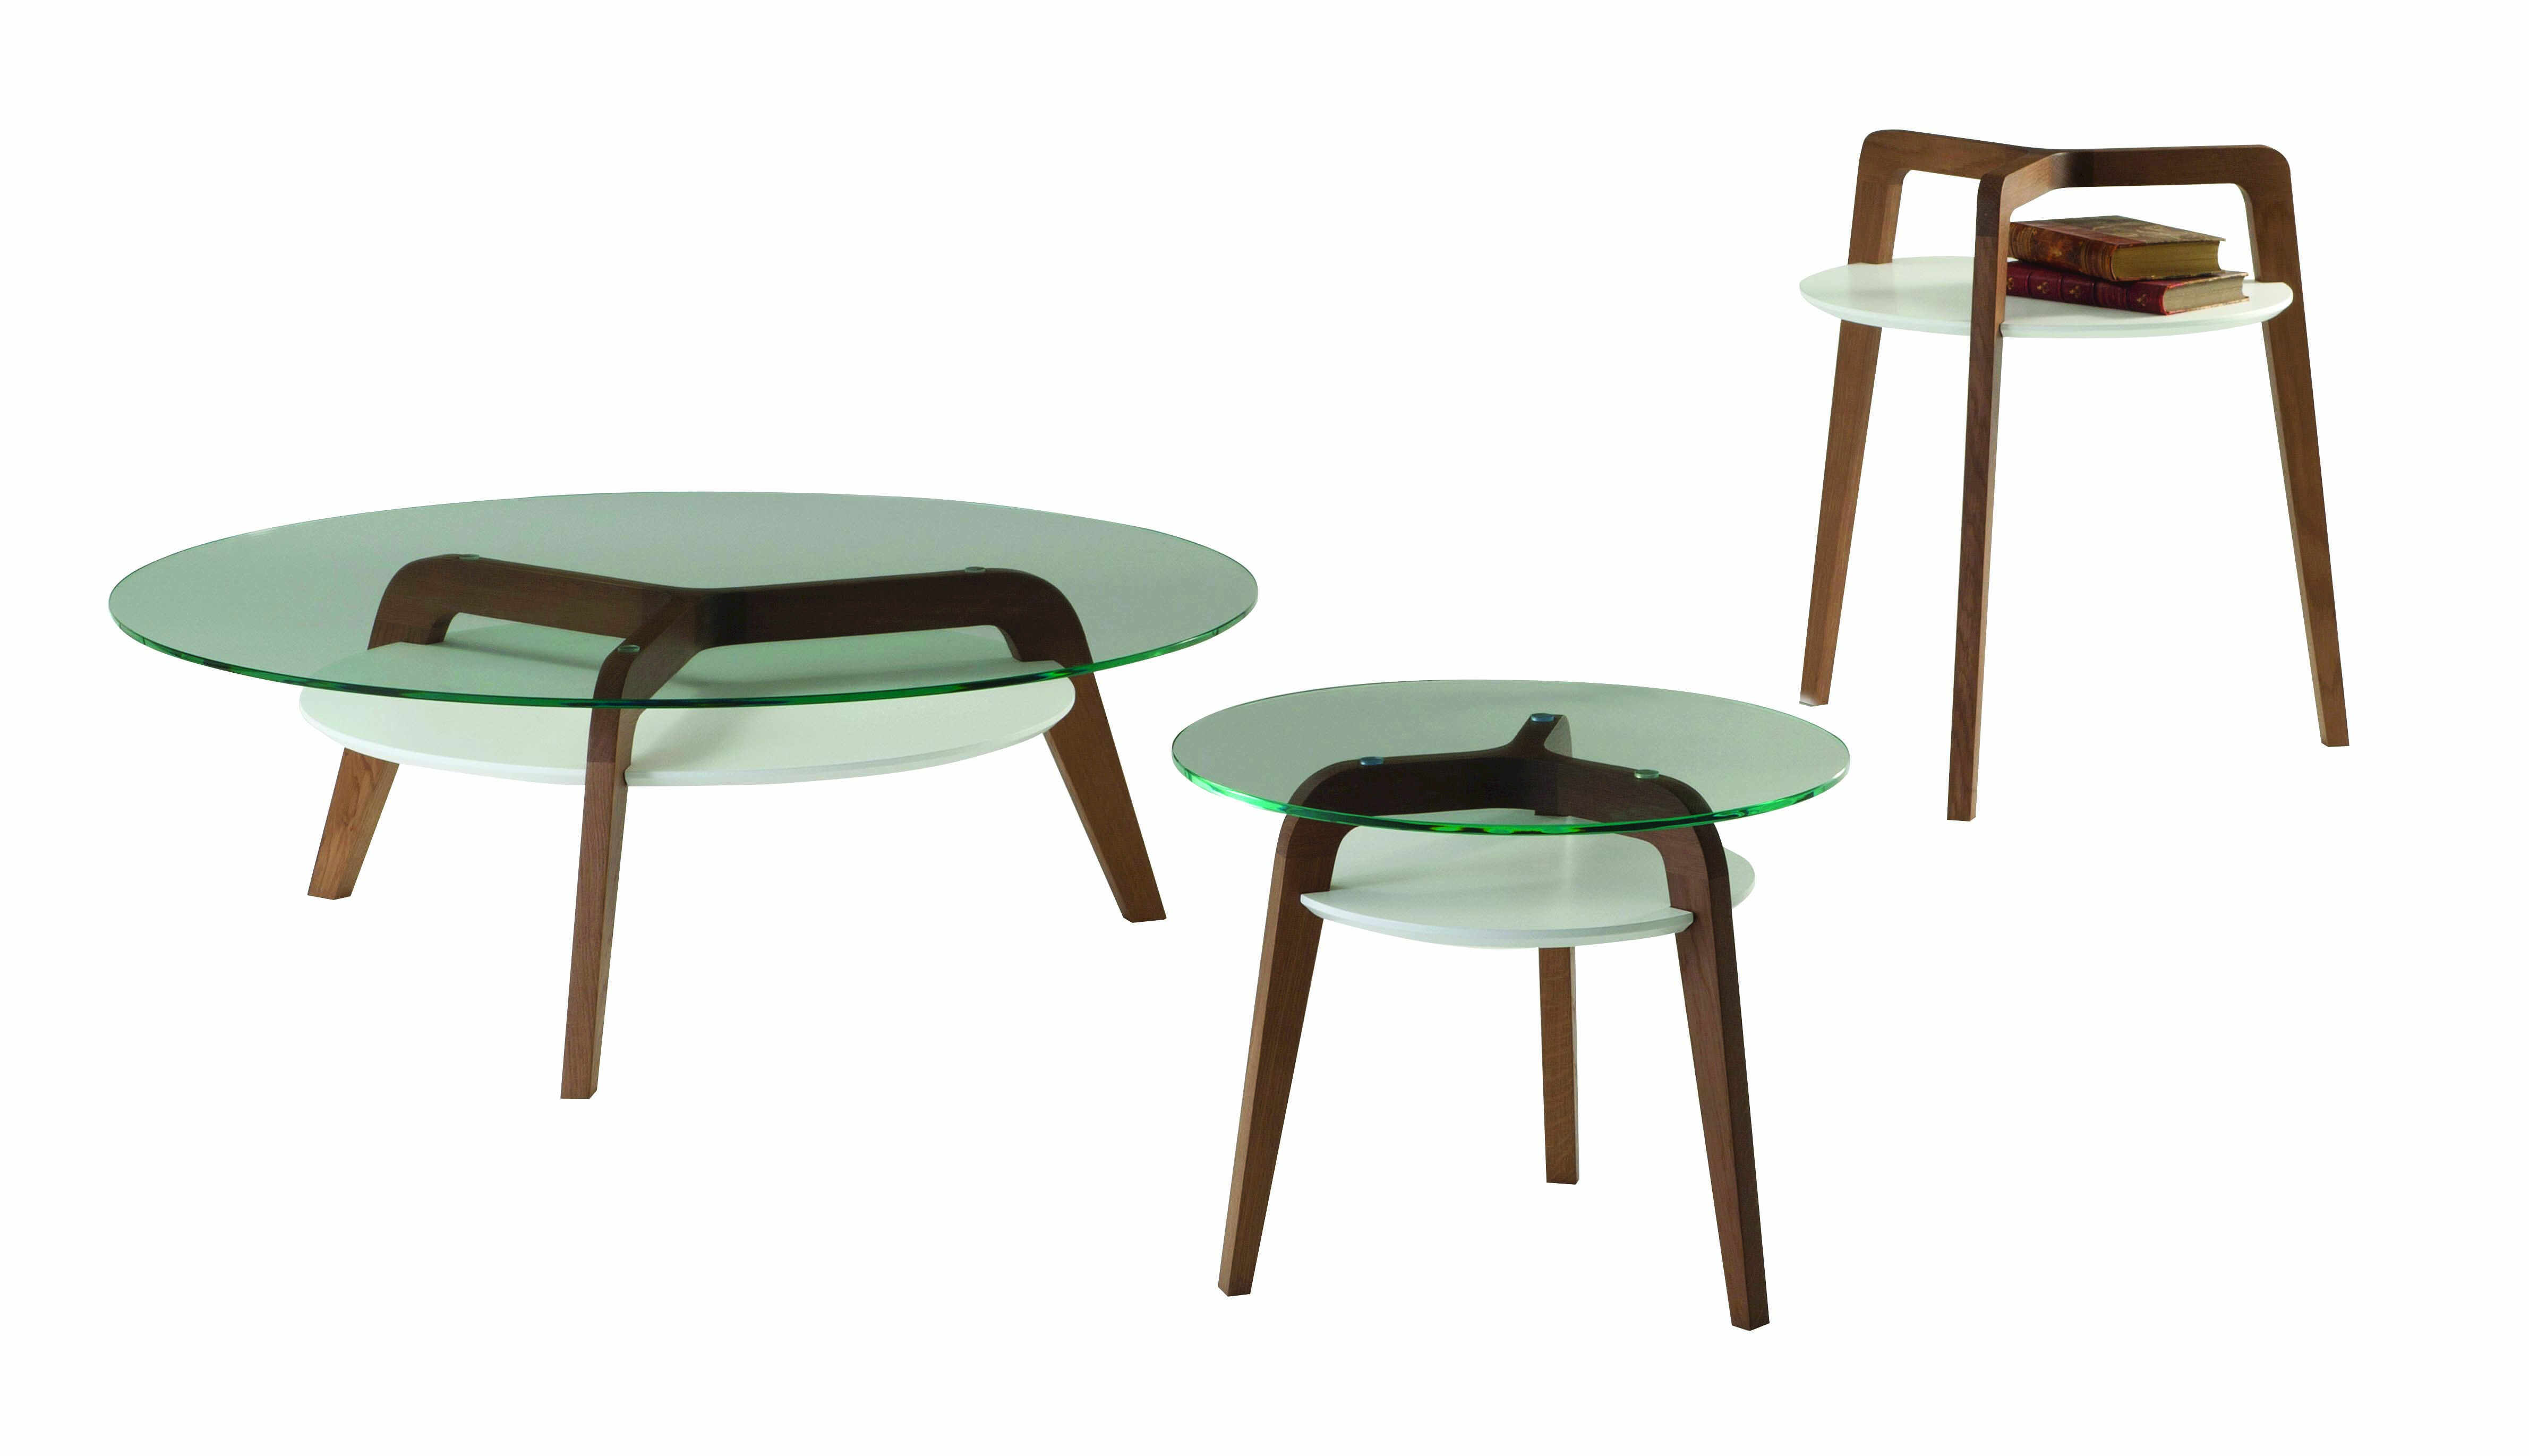 Table basse merisier roche bobois table basse roche et - Table de salon en verre roche bobois ...